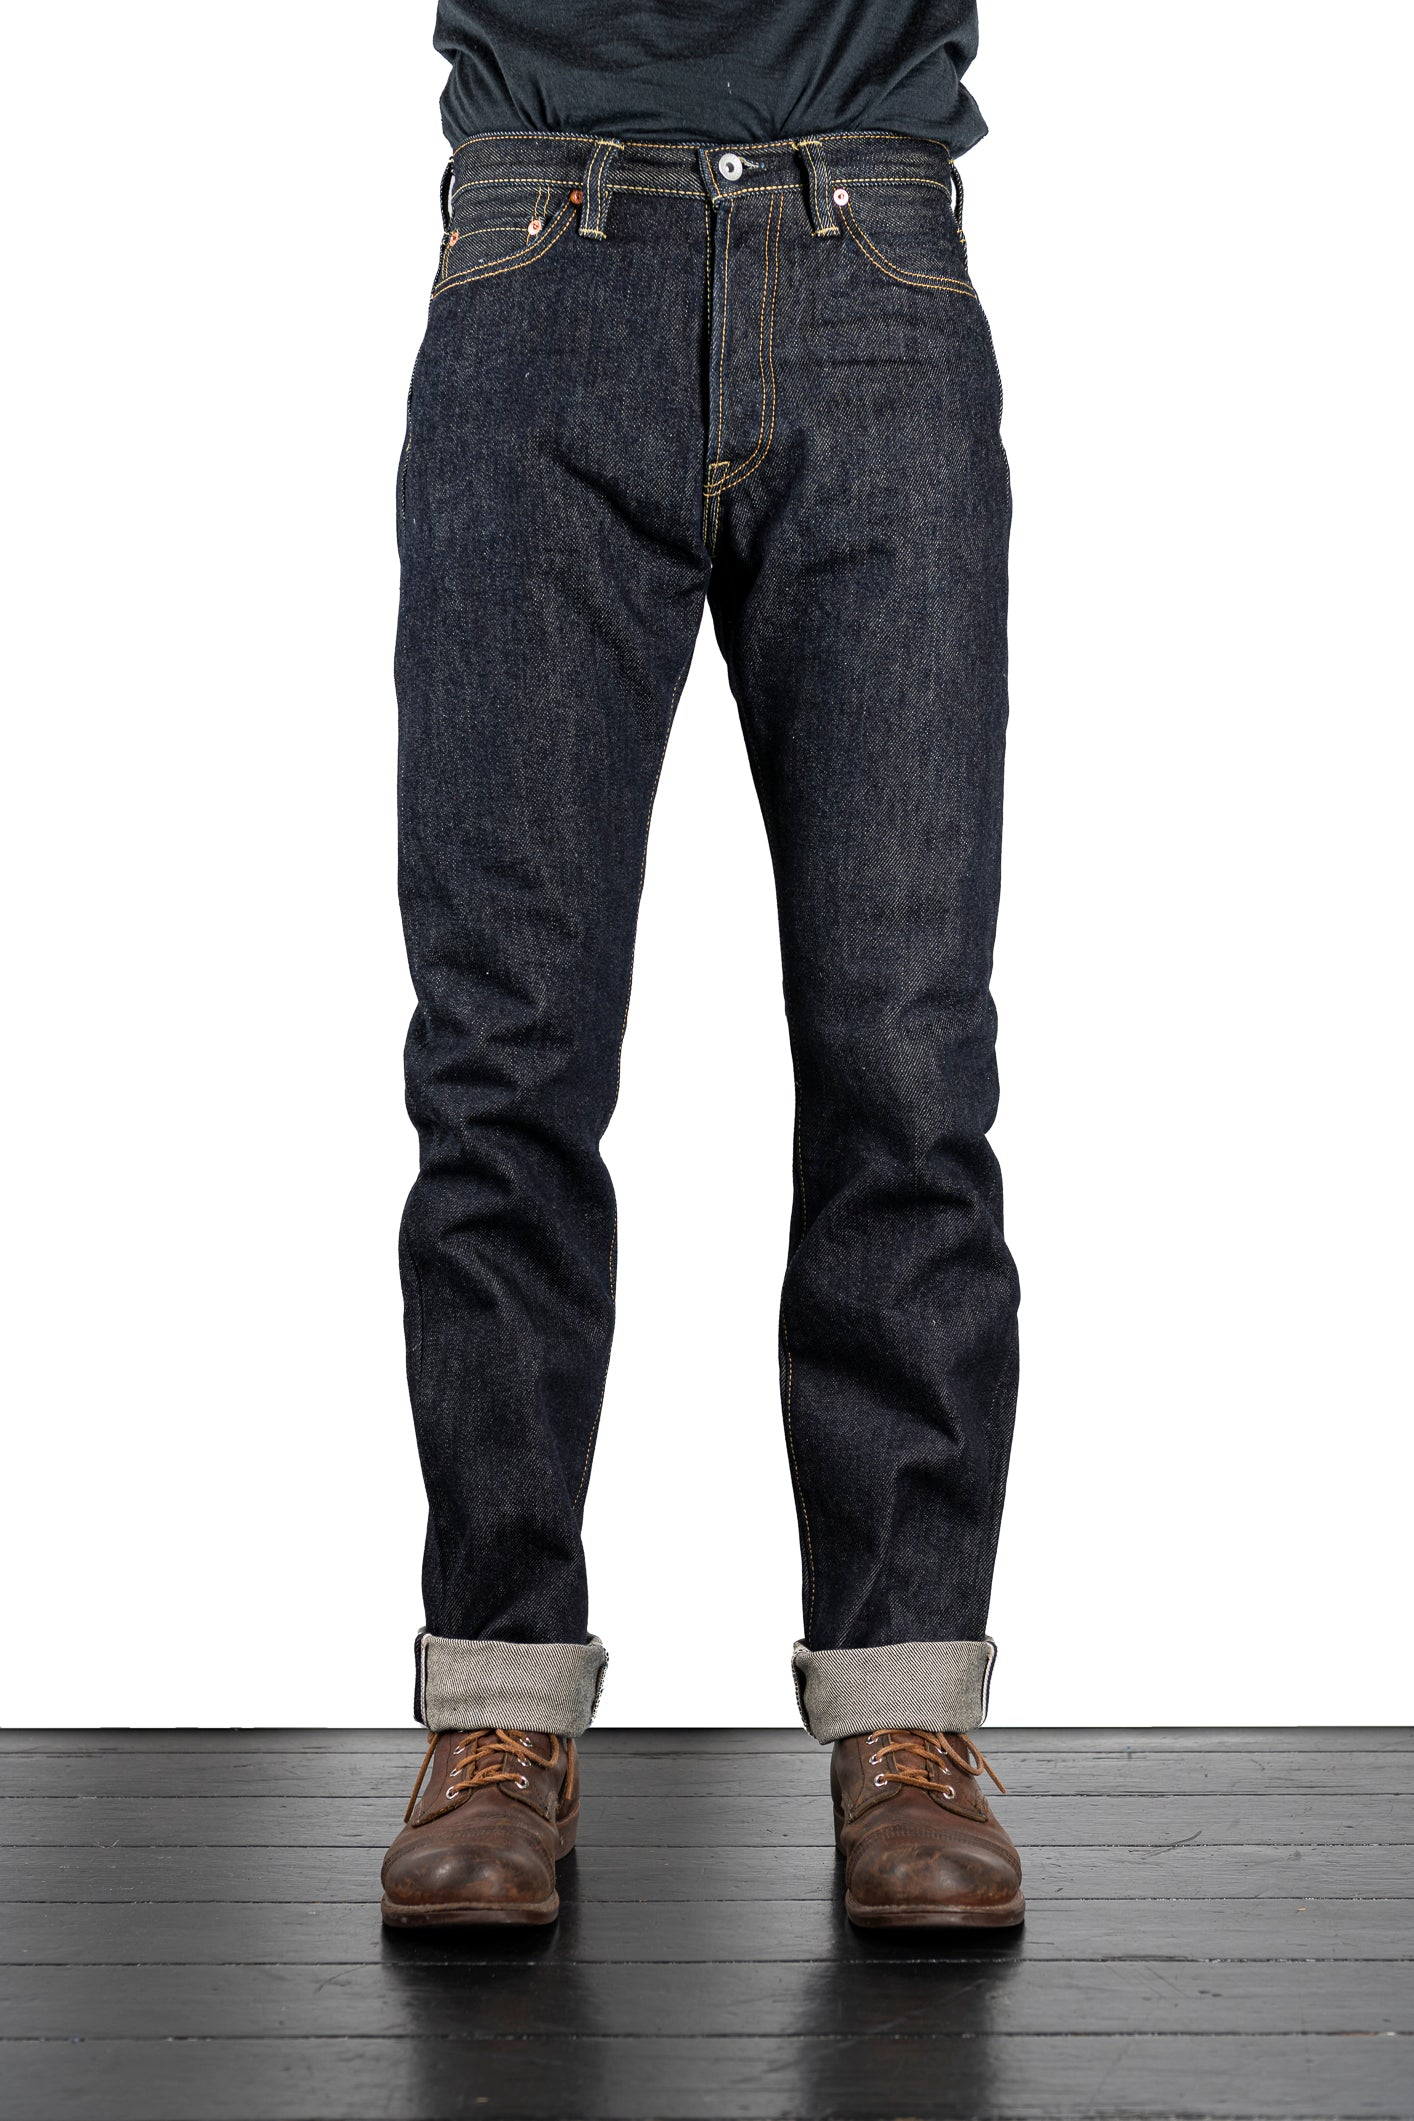 Iron Heart - 888S Indigo 21oz